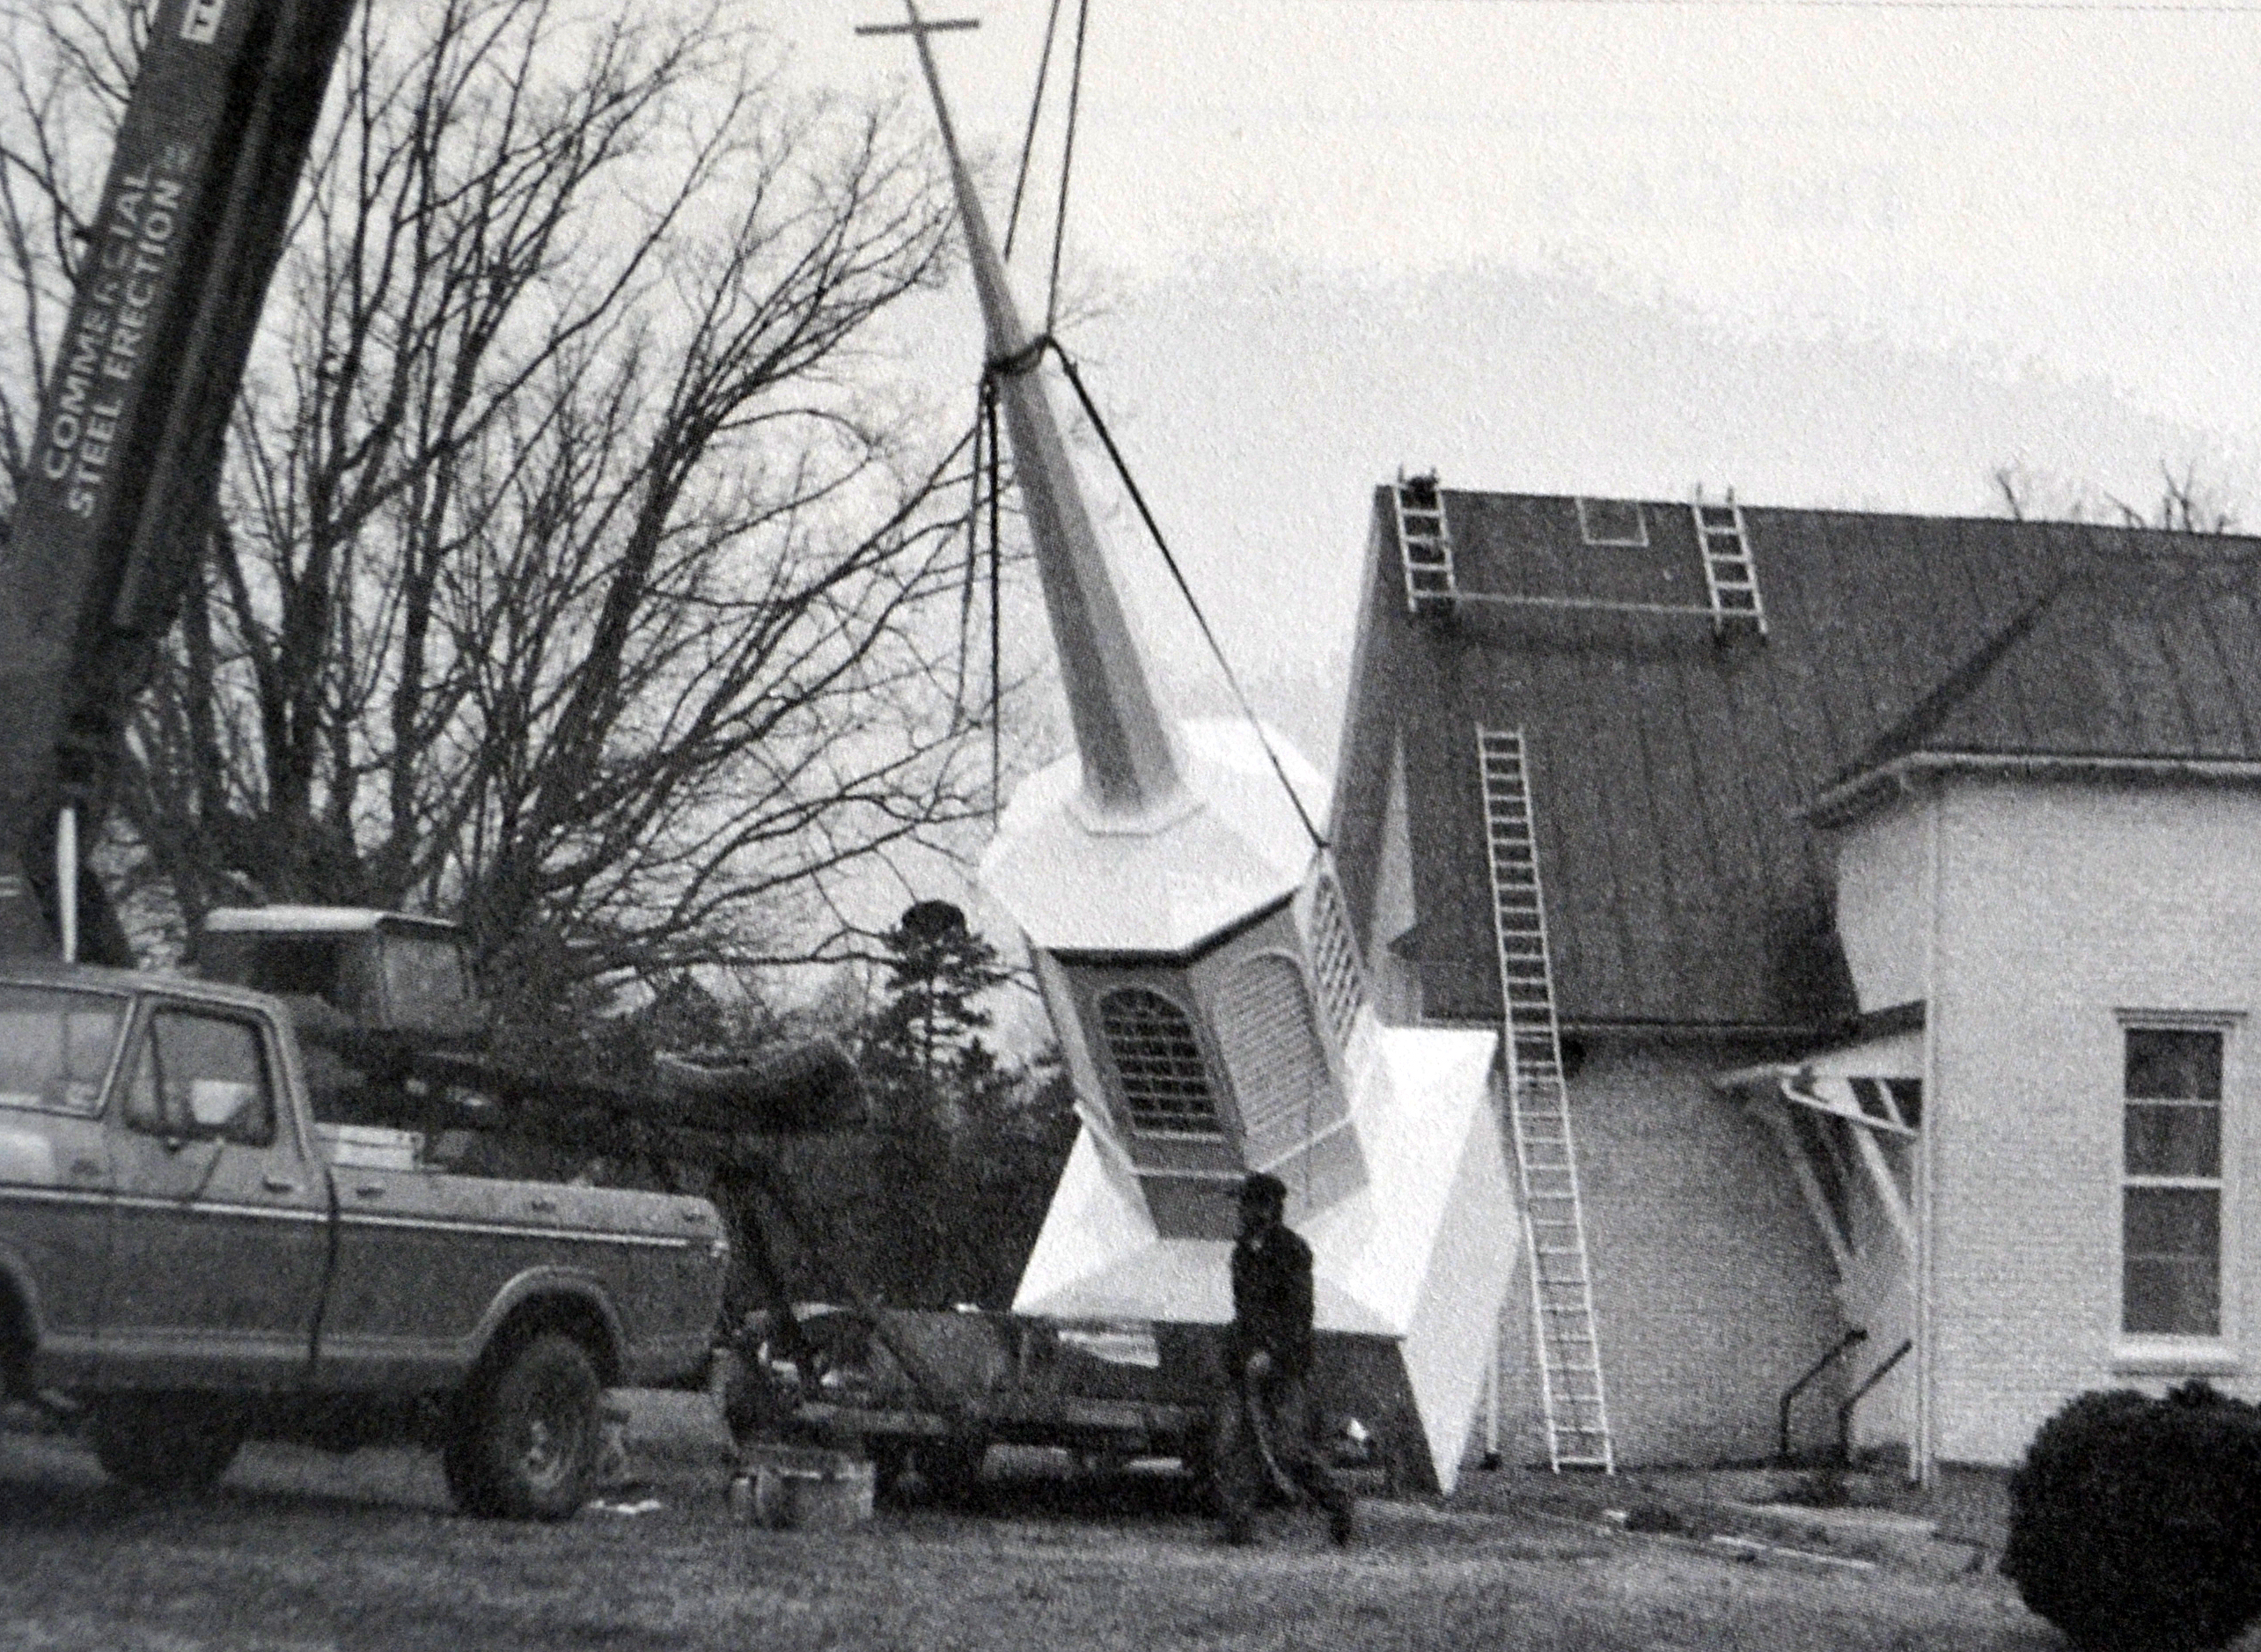 Steple being erected Febuary 1986